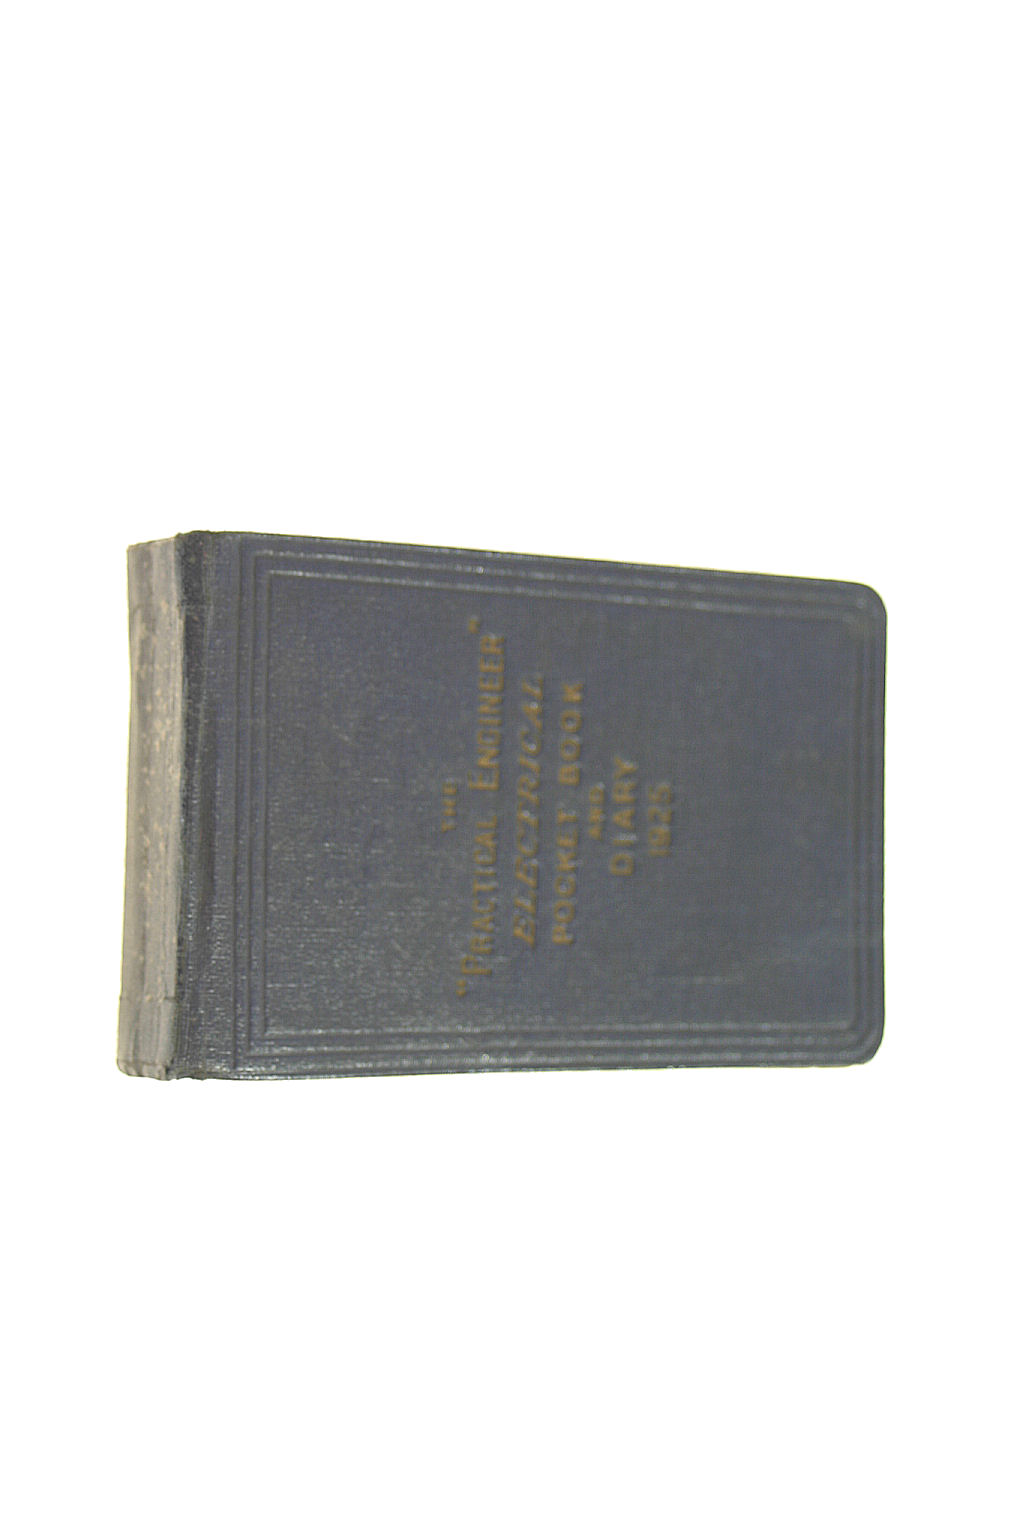 Image for The Practical Engineer Electrical Pocket Book And Diary For 1925